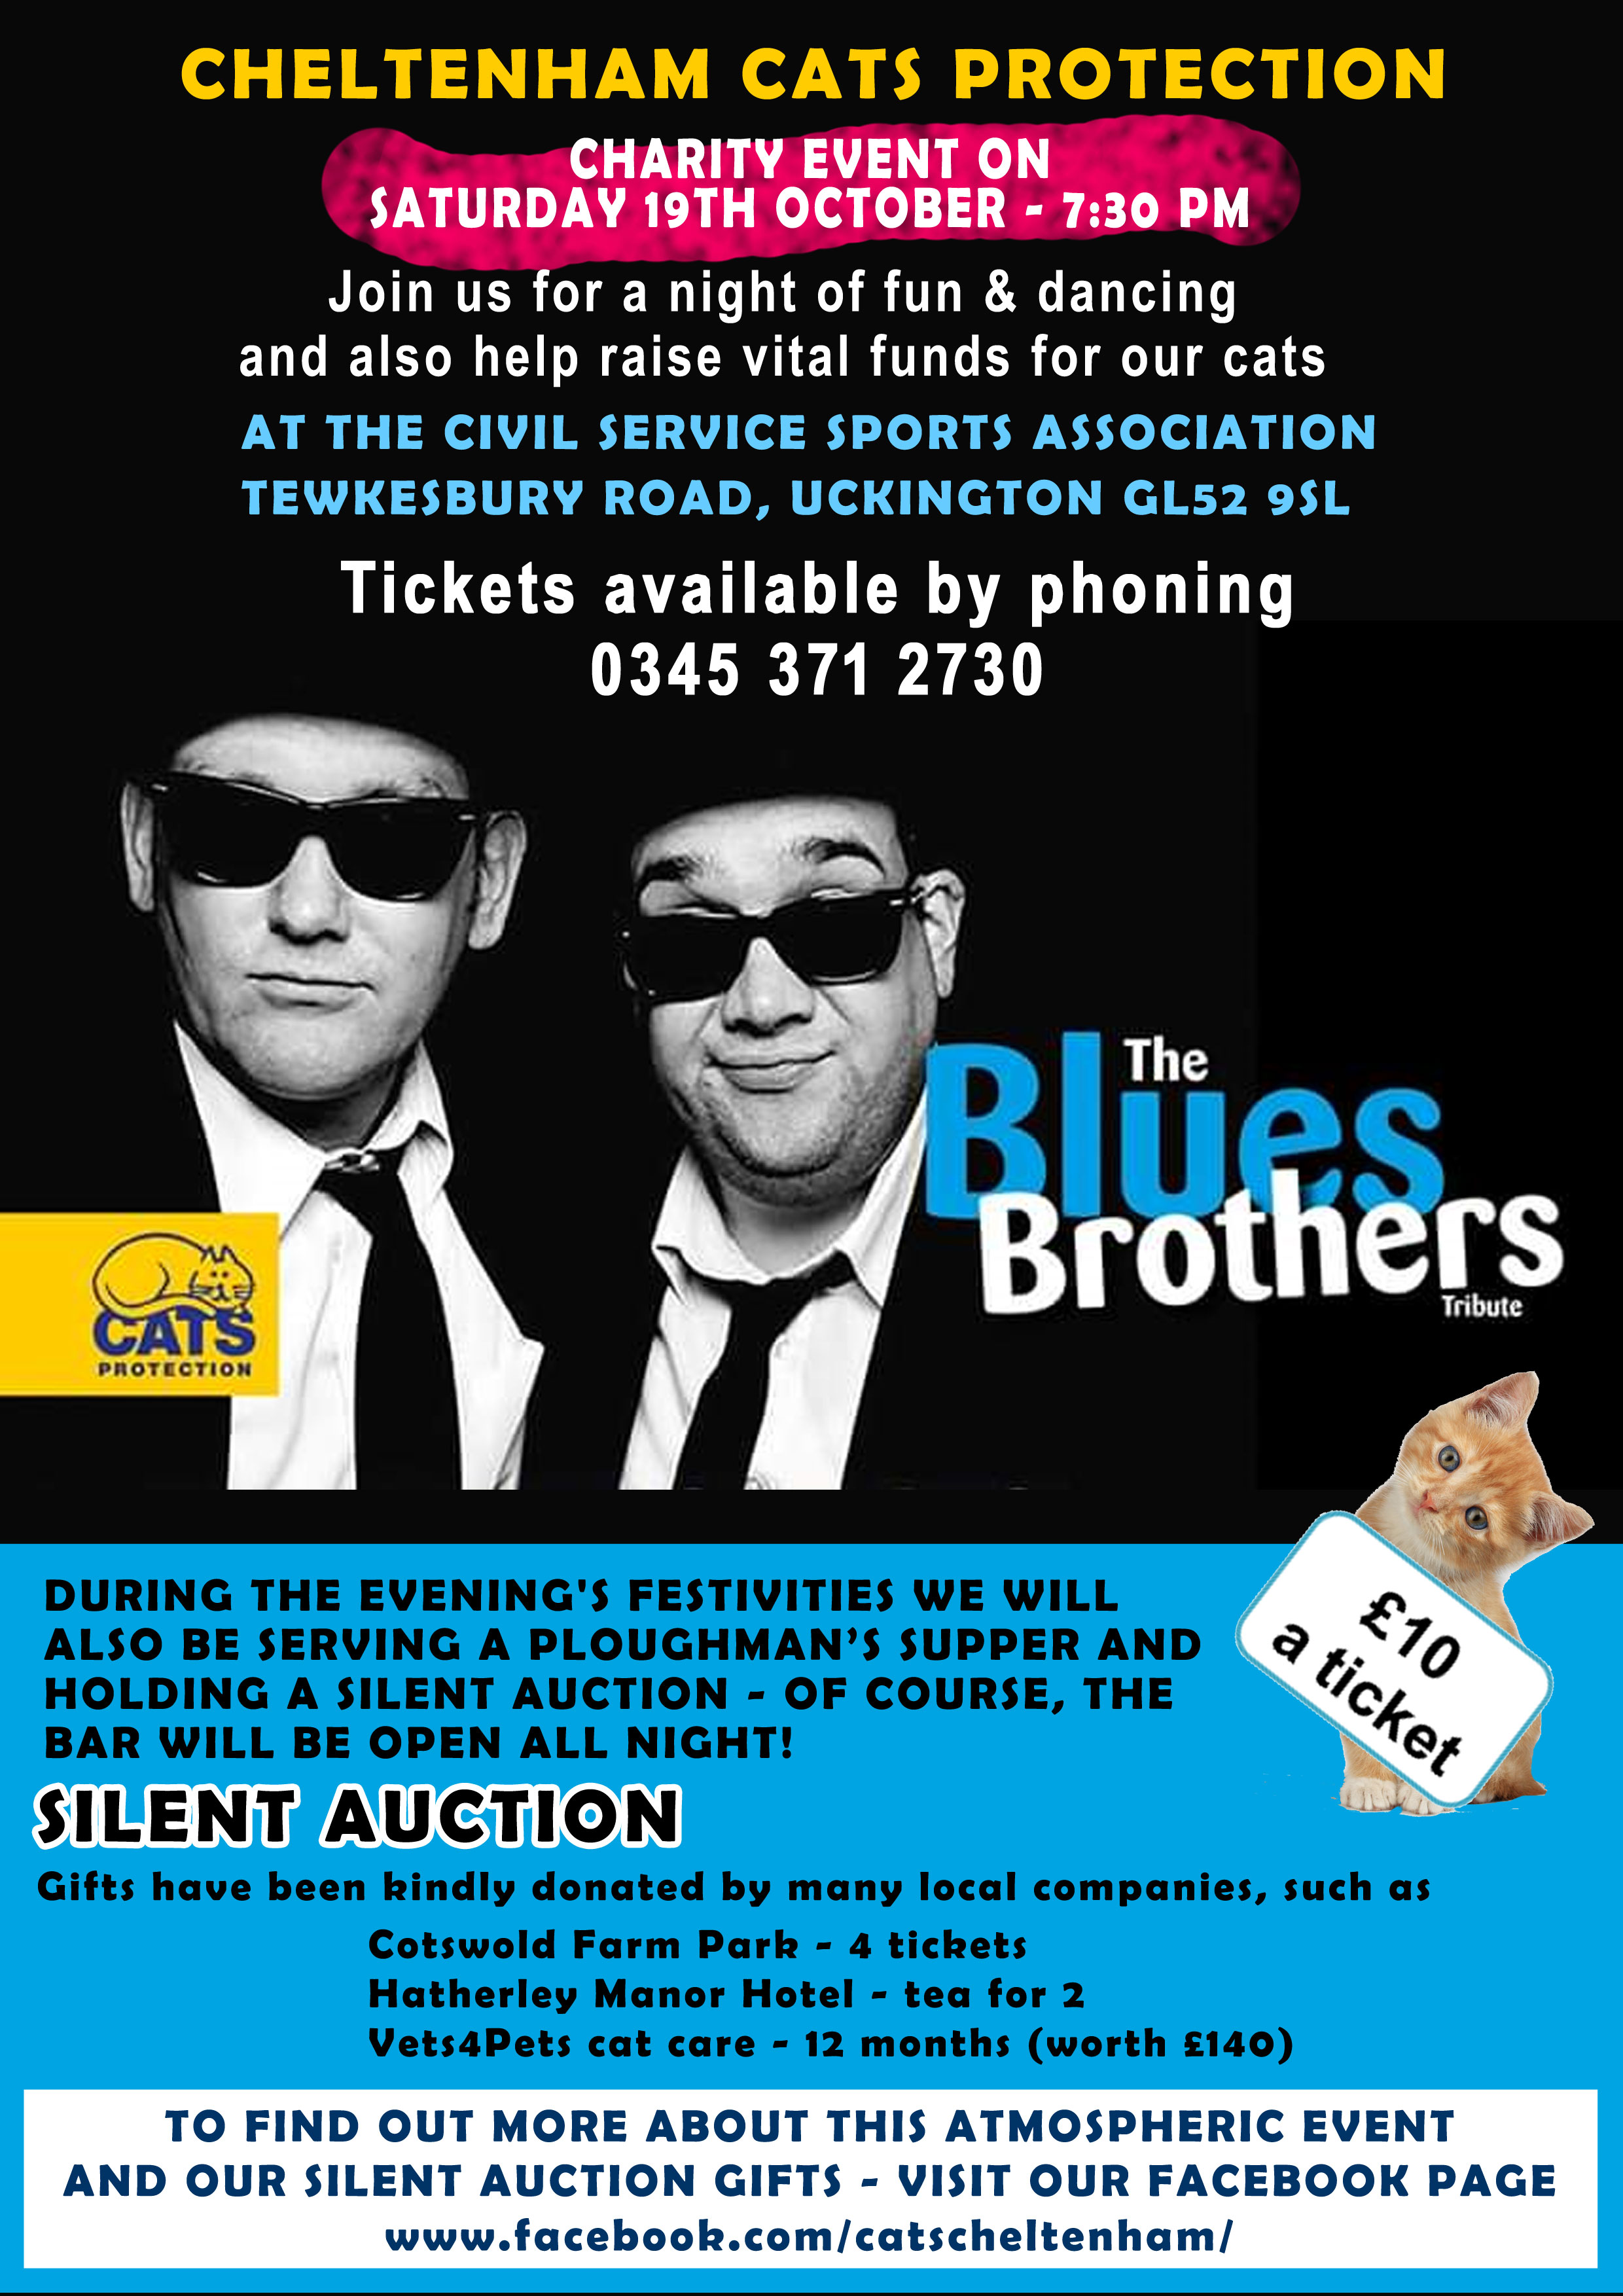 Dance the night away in the company of the Blues Brothers - charity fundraiser